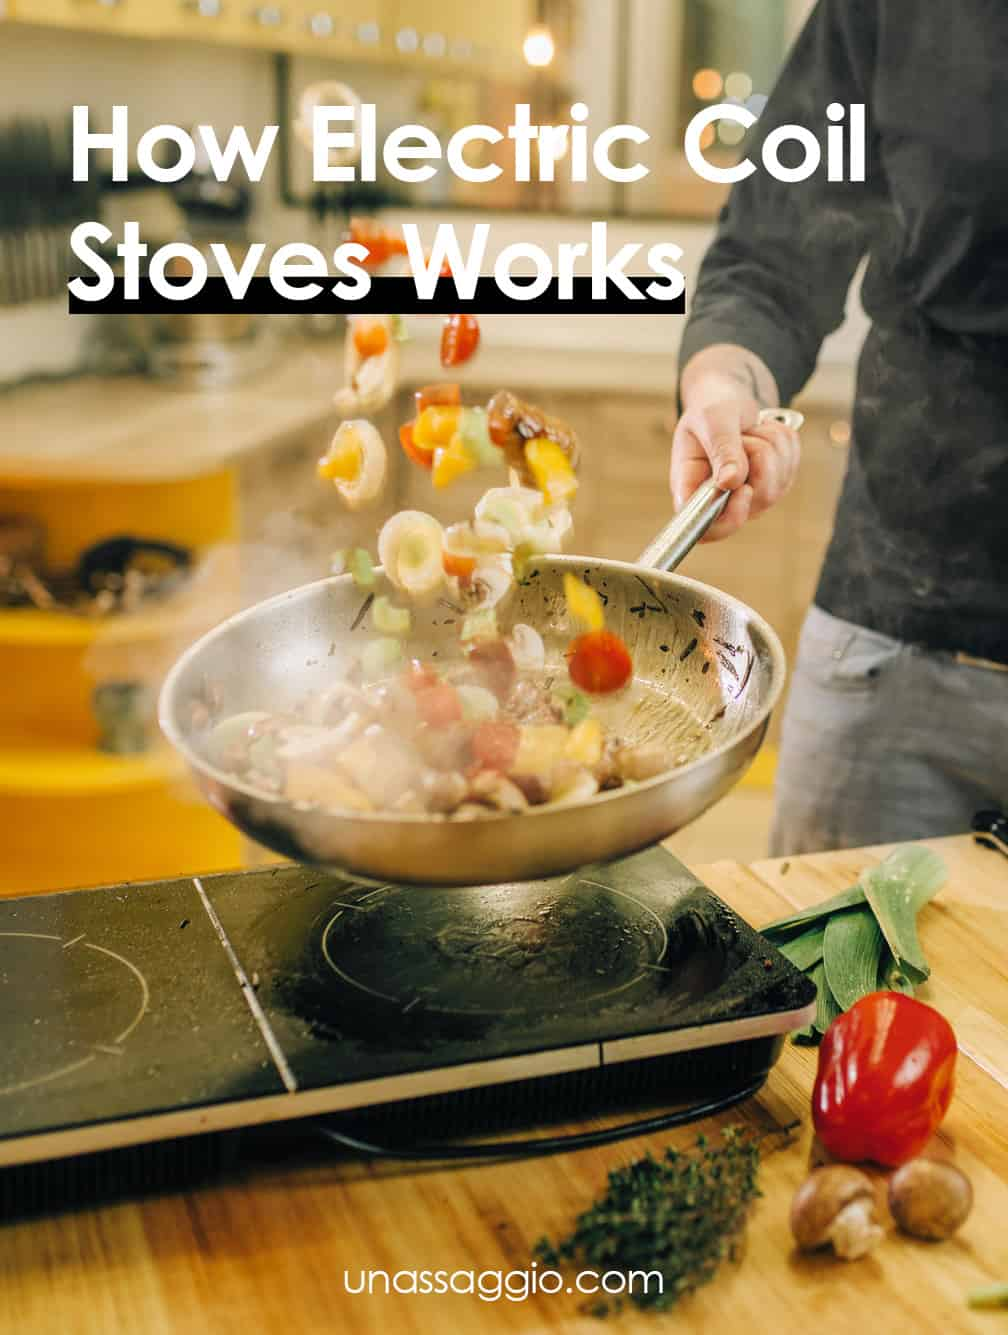 How Electric Coil Stoves Works